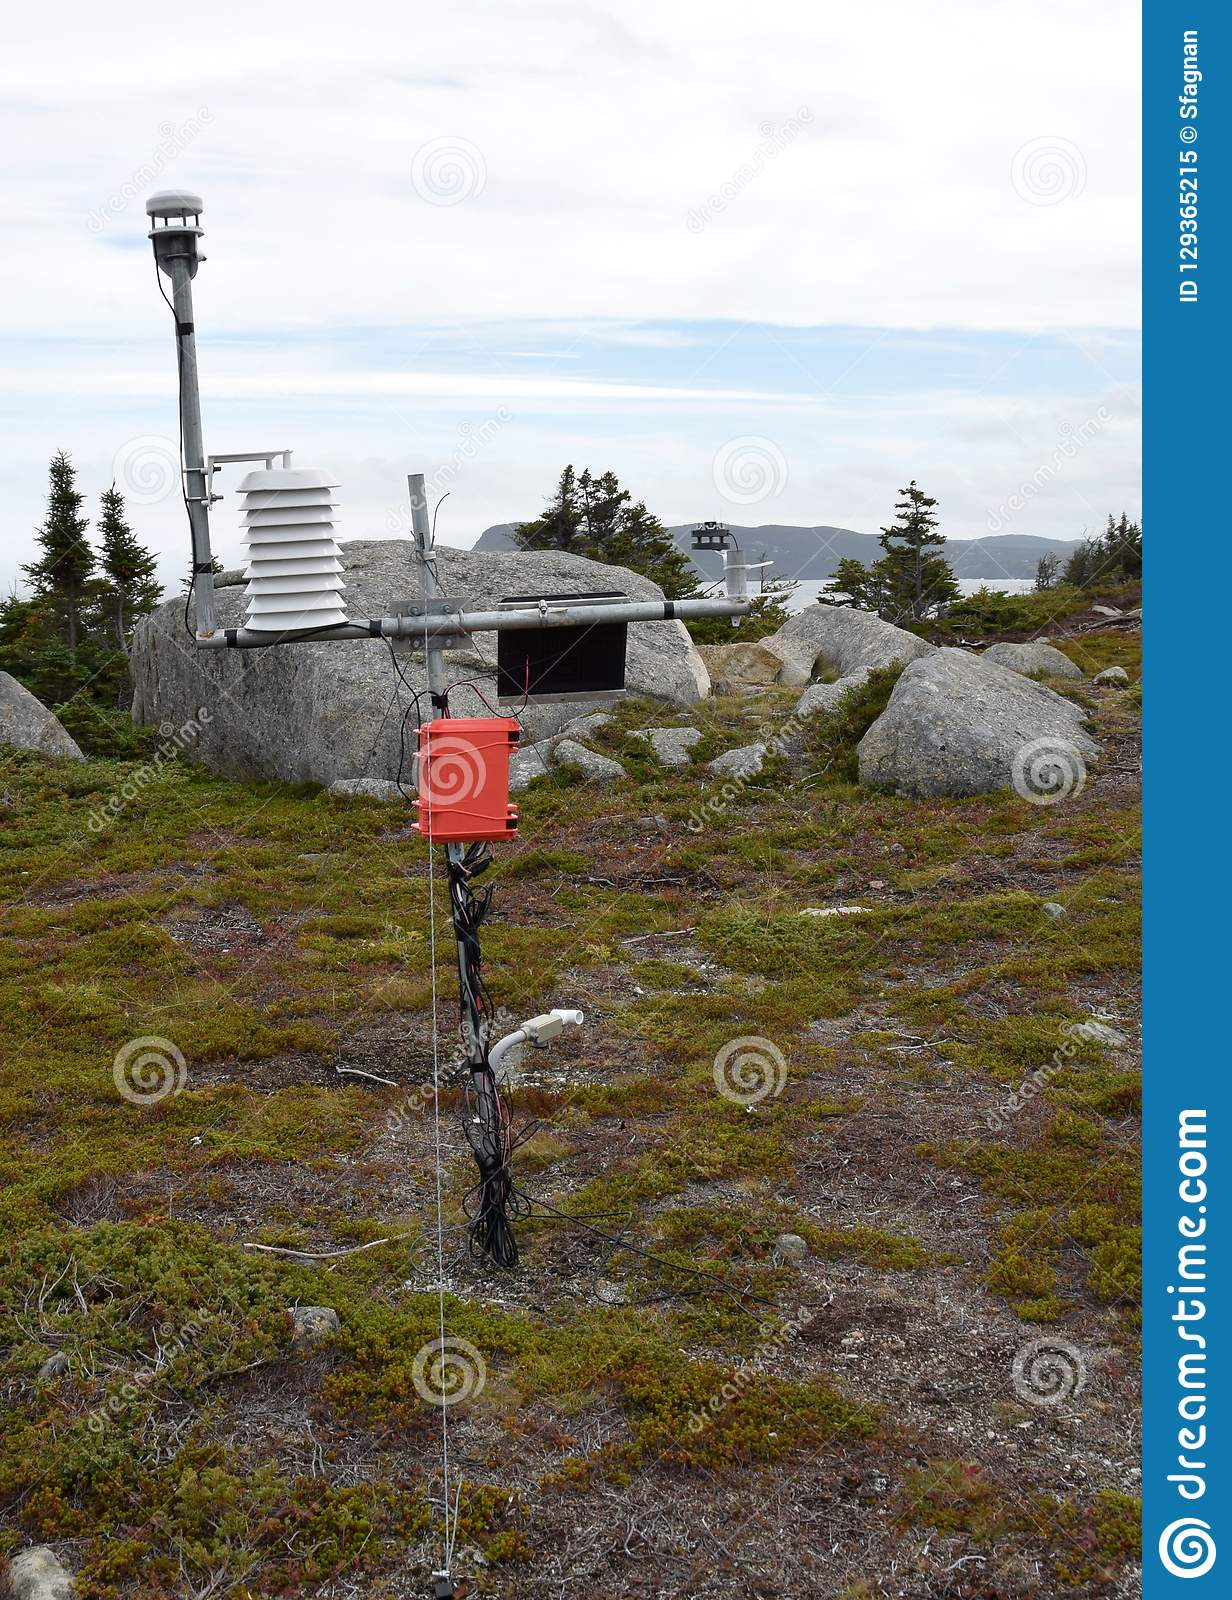 Outdoor Weather Station On The Hill Stock Image - Image of ...